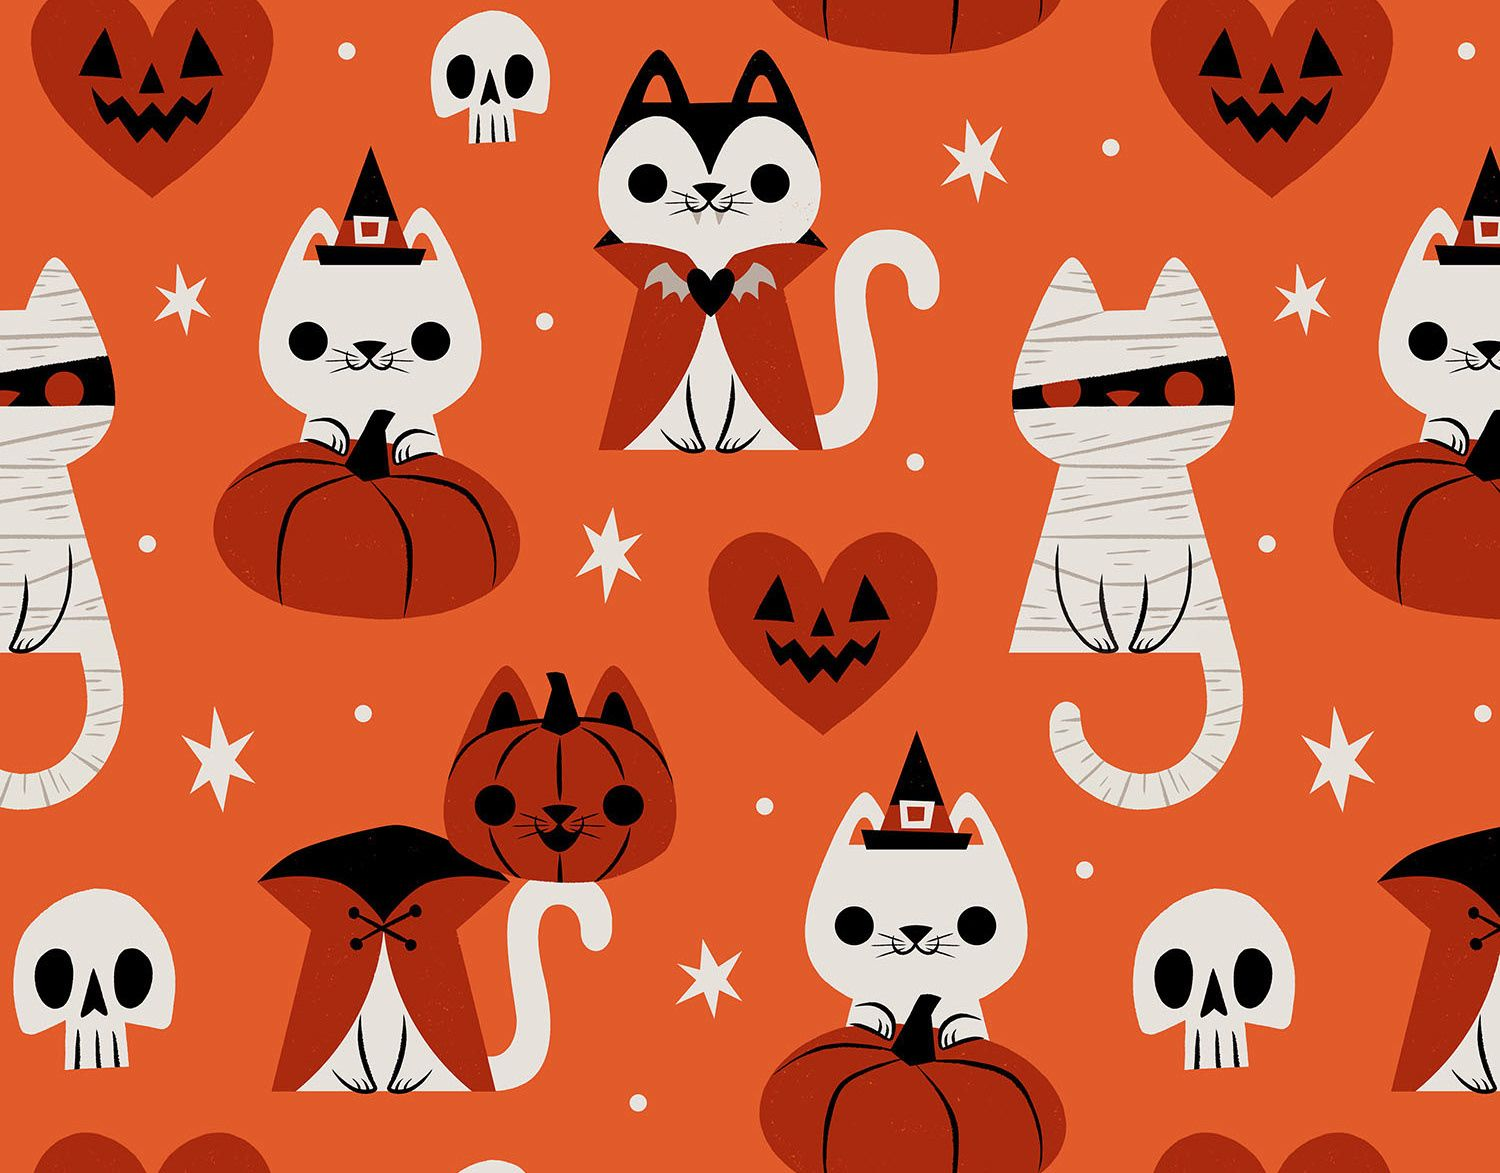 Related image Halloween illustration, Halloween drawings